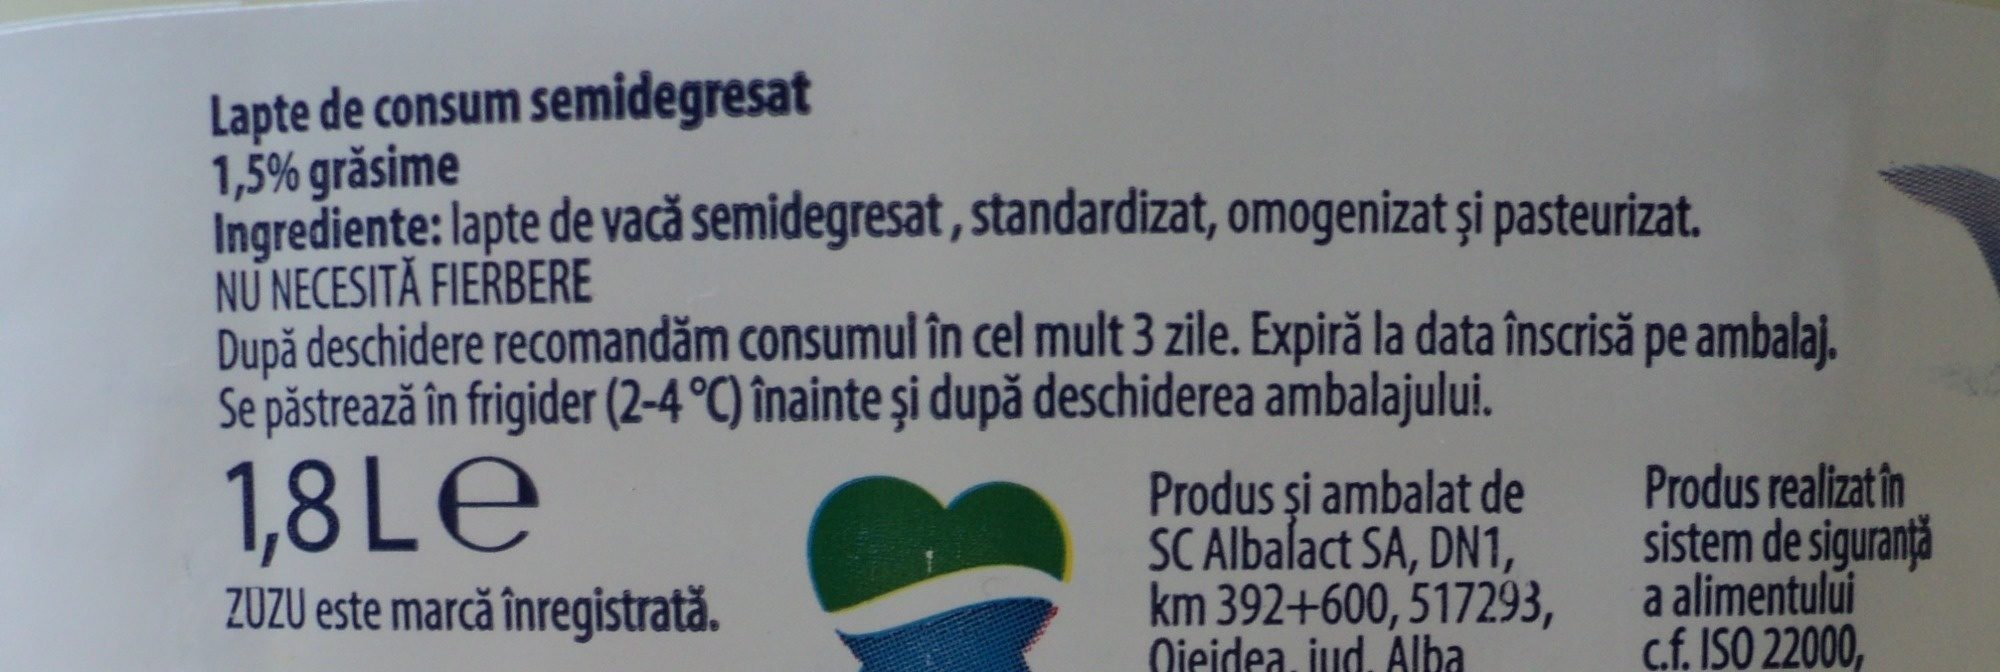 Zuzu Lapte de consum 1,5% - Ingredients - ro